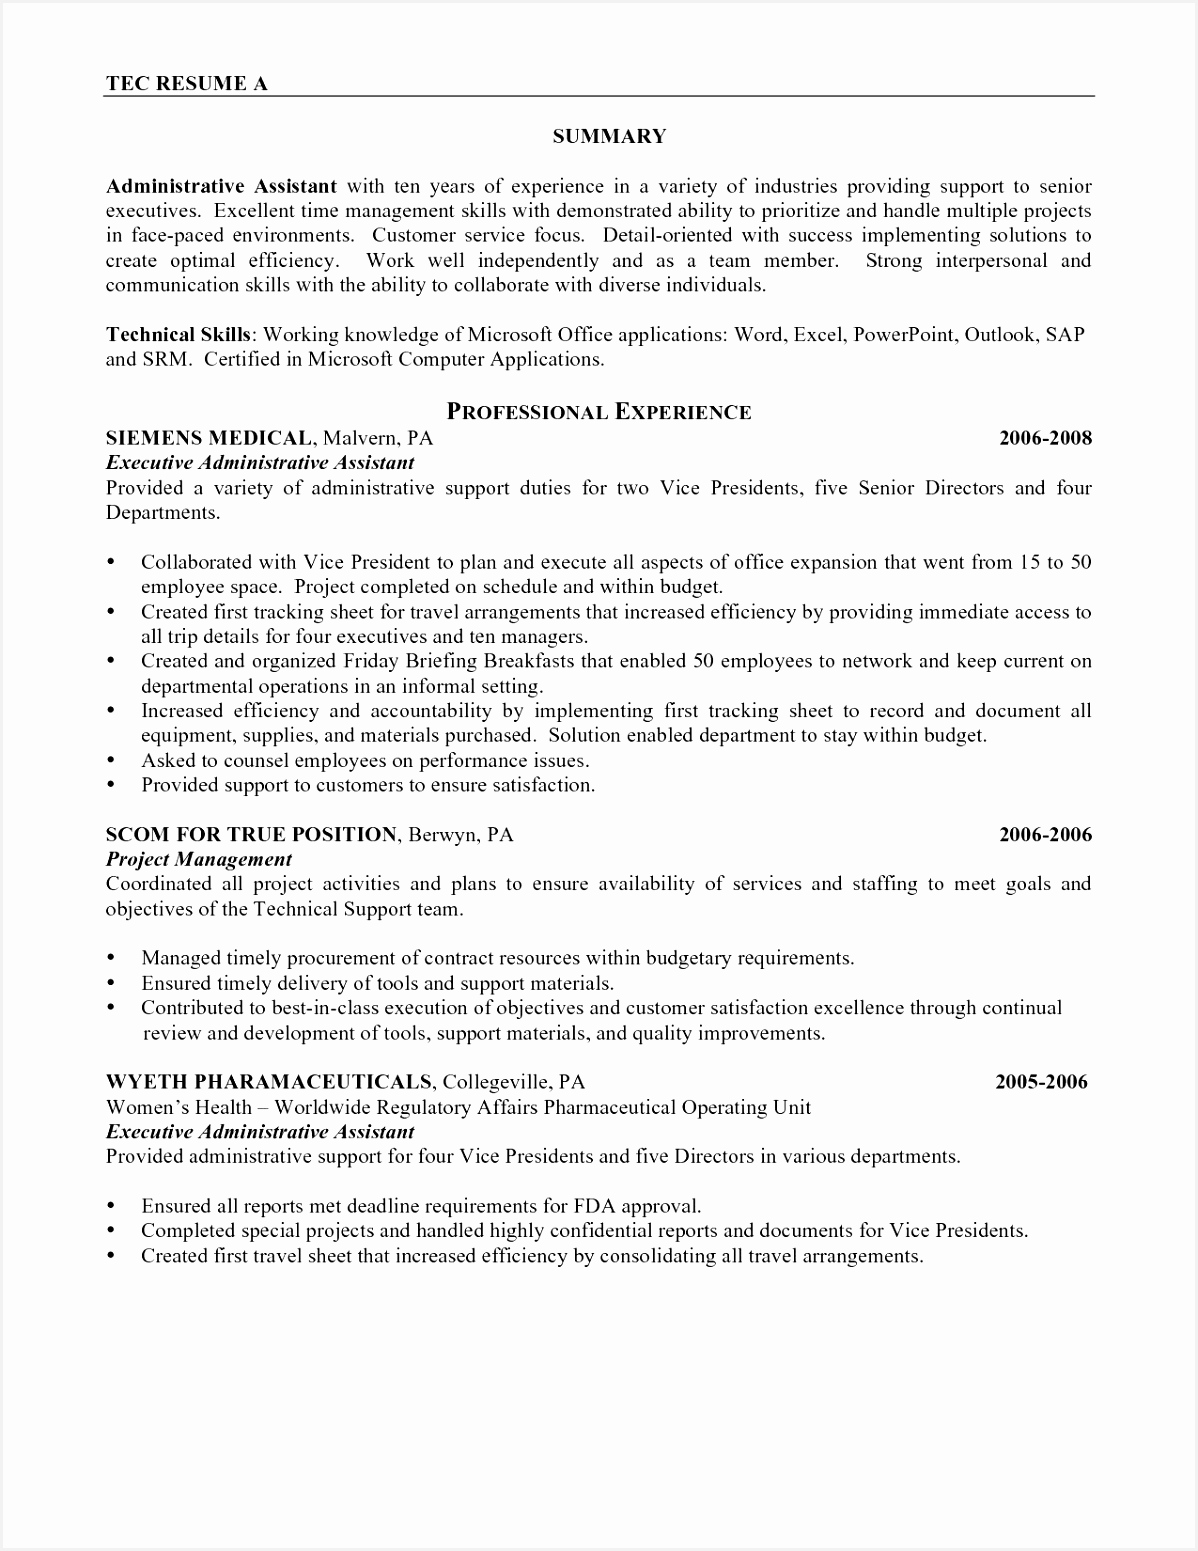 Best Resume Cover Letter Examples Awesome Cover Letter Examples In Microsoft Word Valid Resume and Cover 15511198jeihi